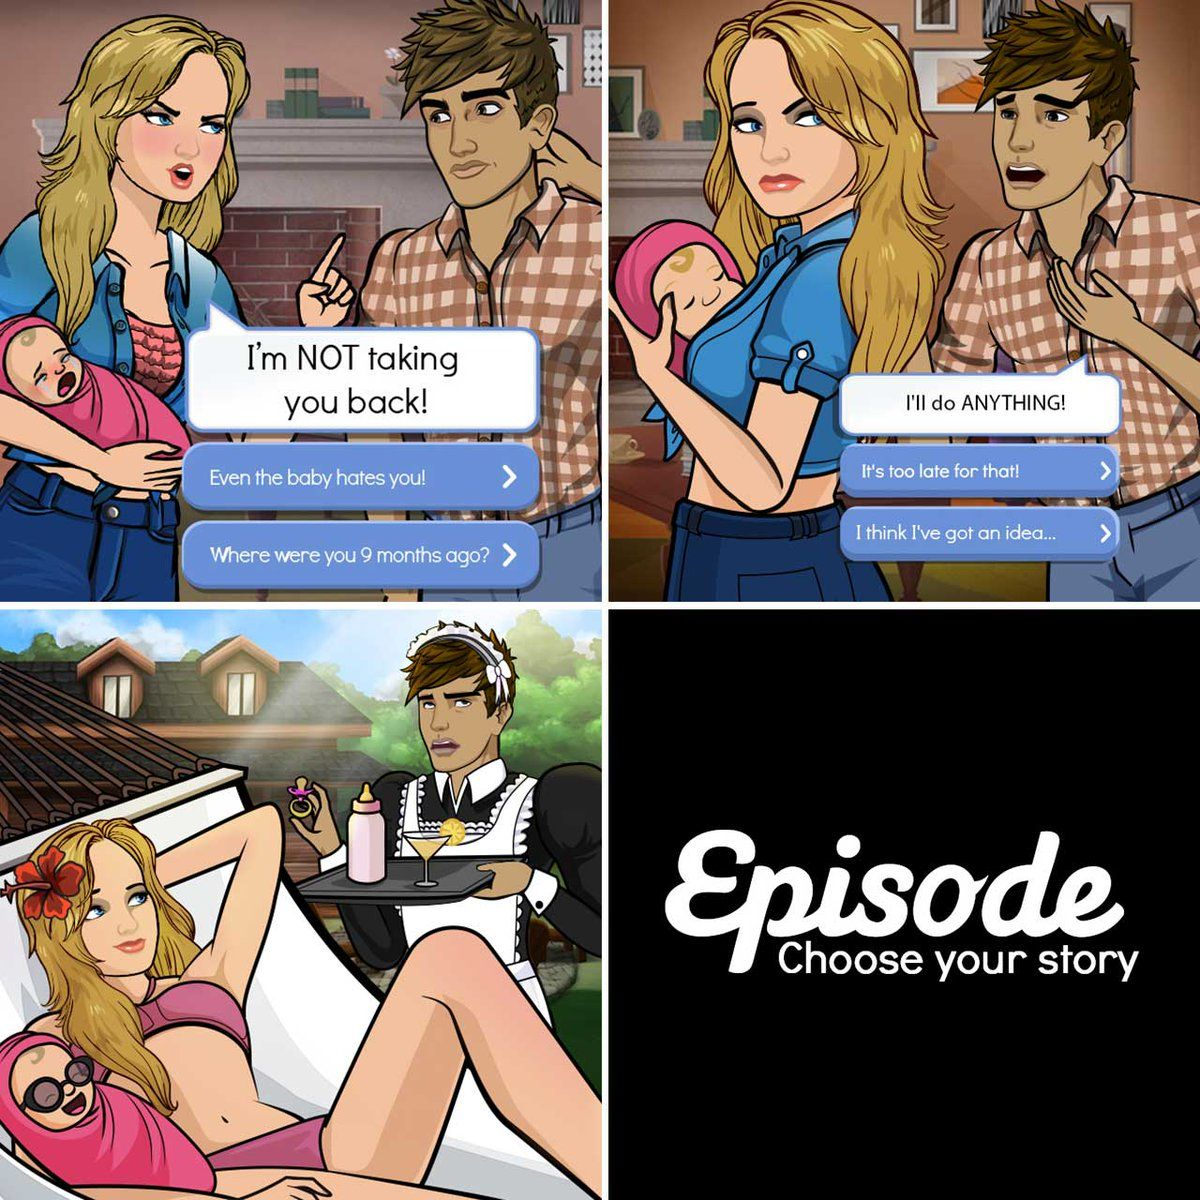 f35af0b3cb9ddcce1fe798a69327b3bd - Episode Mod Apk Unlimited Gems And Passes Latest Version (2020)